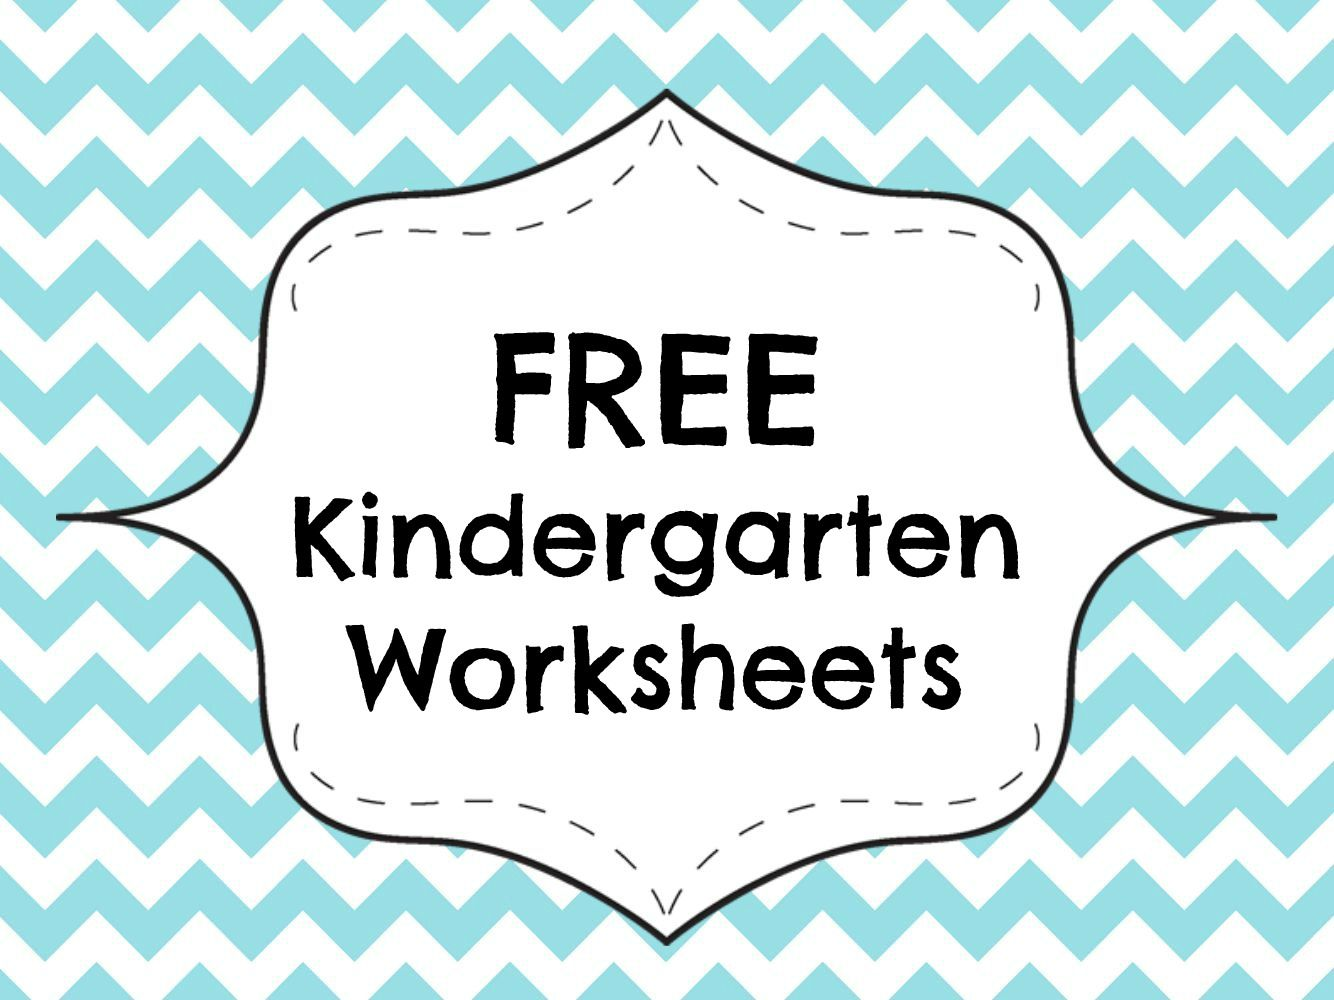 Free Kindergarten Worksheets Printable